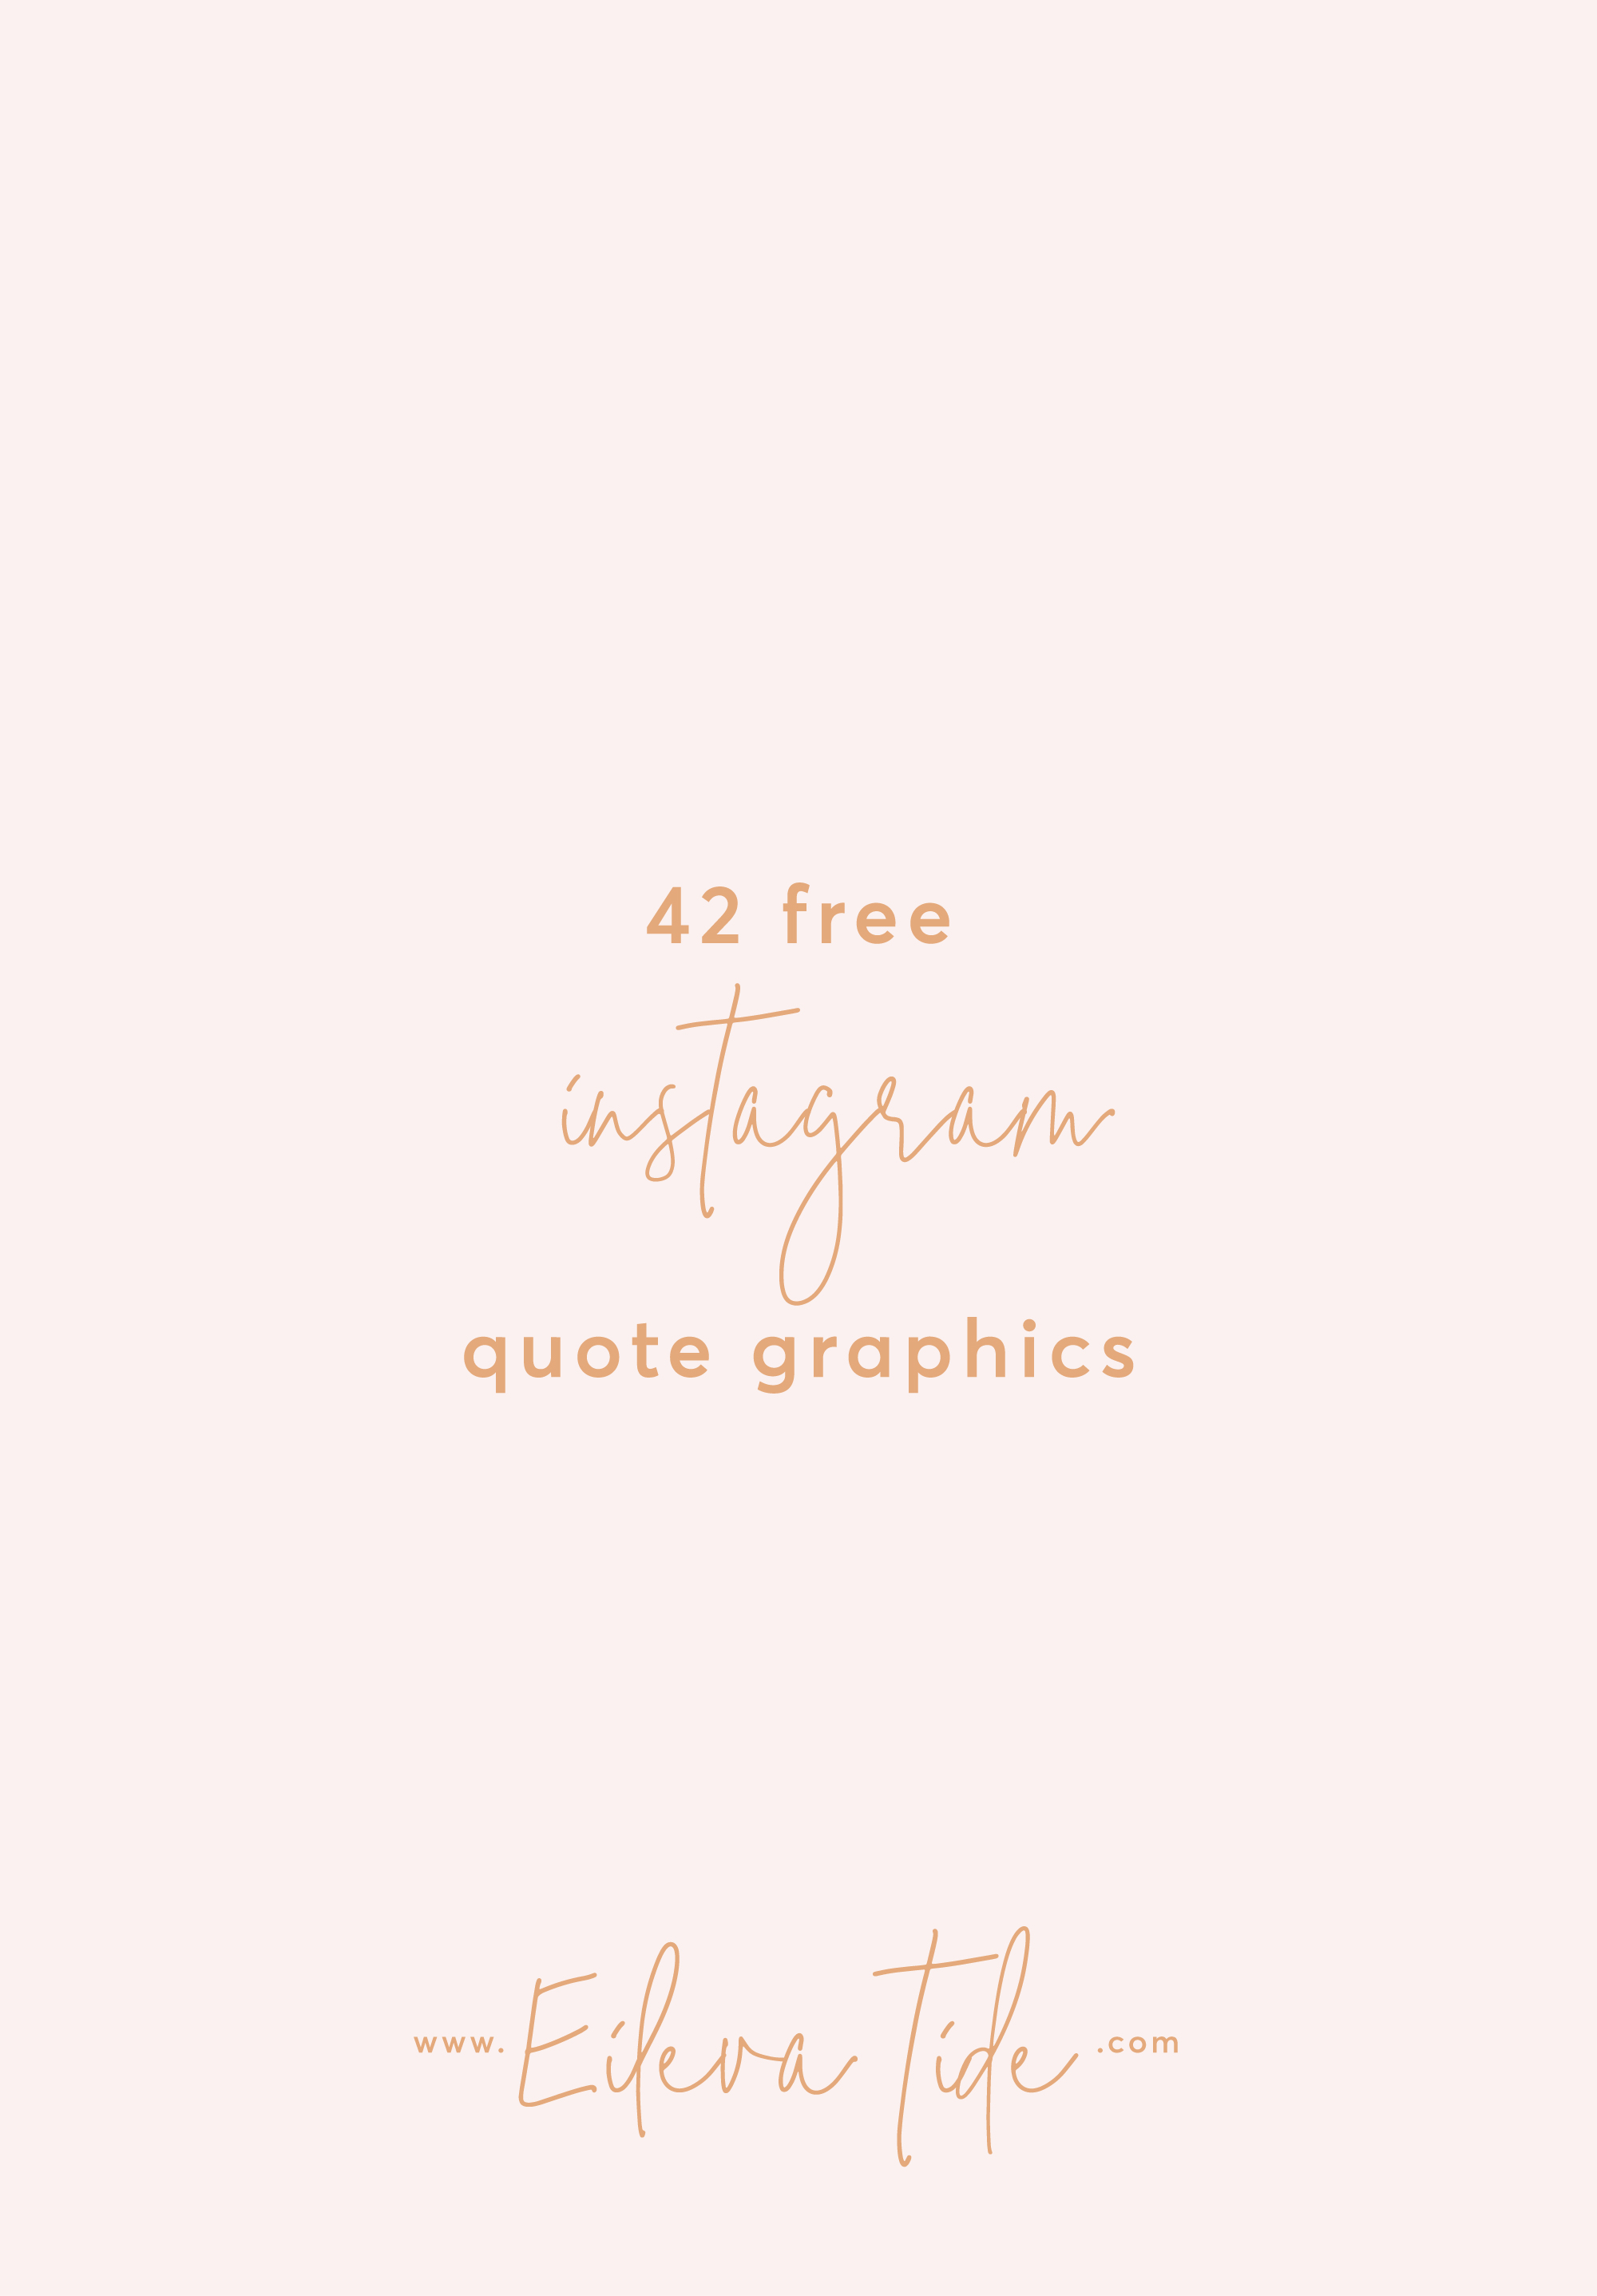 Sometimes you just don't have the time to shoot, edit and post a fresh Instagram pic - I get it! That's why I made you 42 totally free quote graphics to save for a rainy day. Download here!